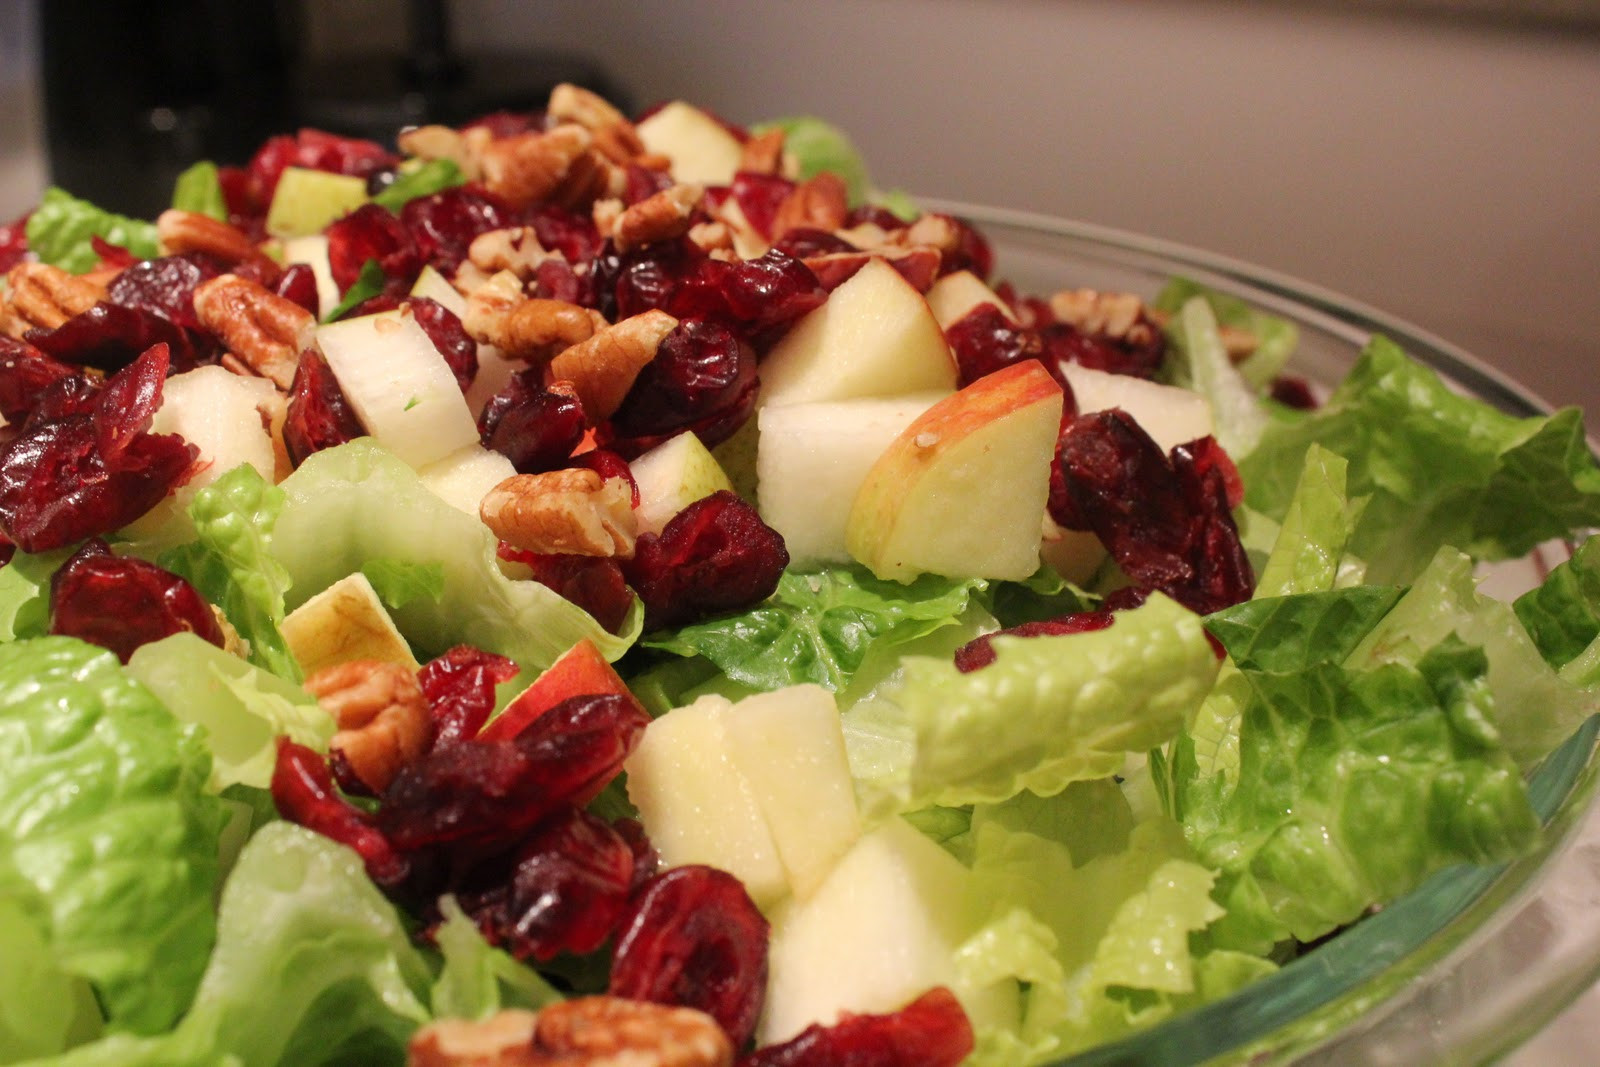 Fall Salad Dressings  Near to Nothing Autumn Salad with Lemon Poppyseed Dressing